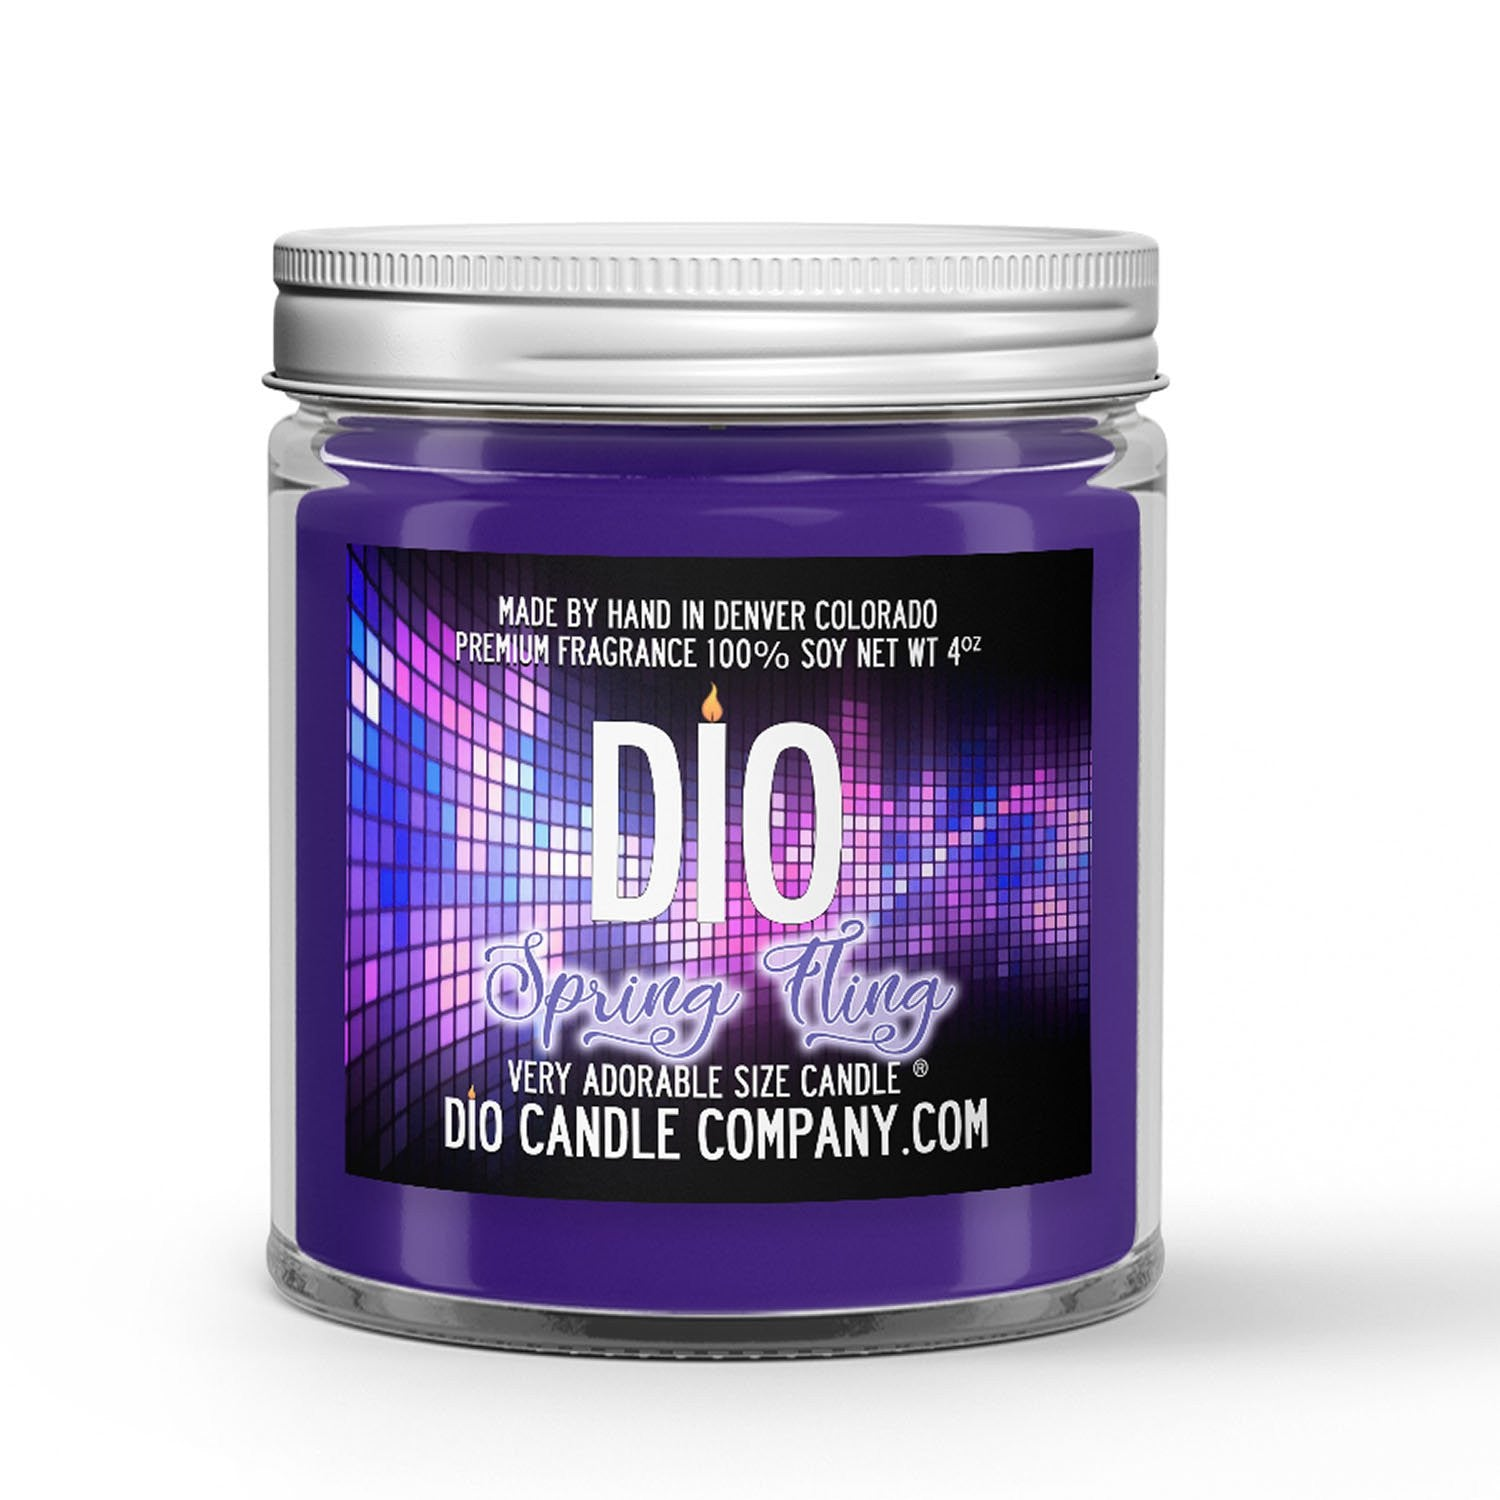 Spring Fling Candle Violets - Baby's Breath - Lime Scented - Dio Candle Company